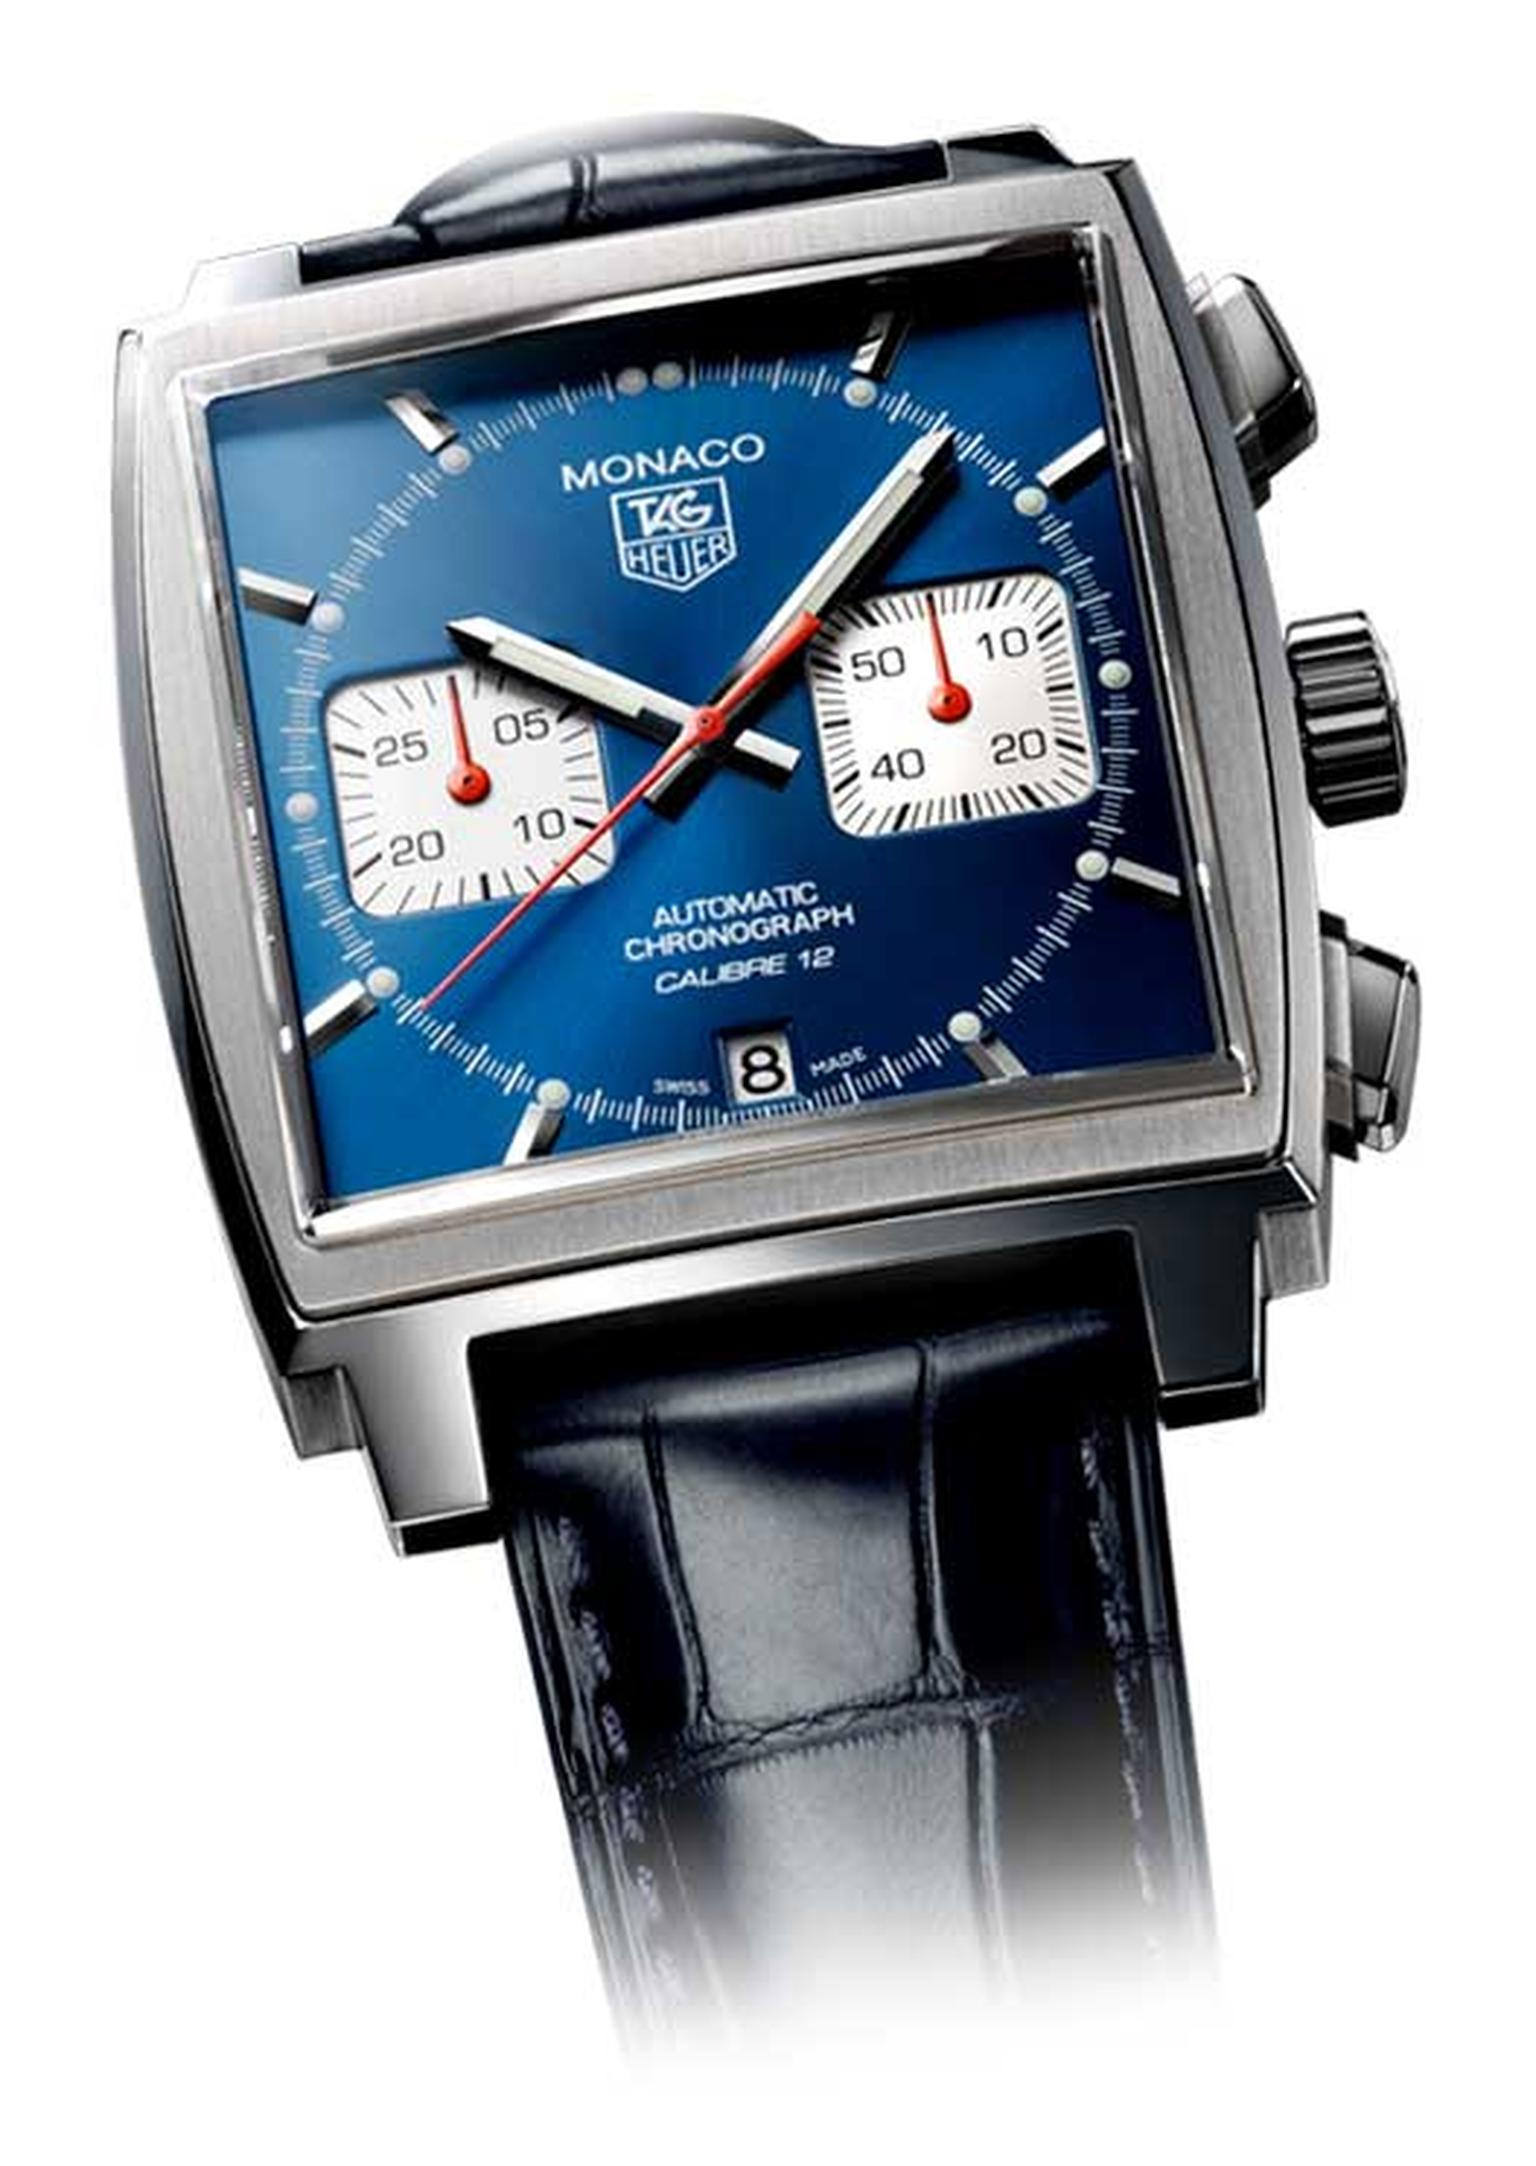 The TAG Heuer Monaco was the world's first square chronograph and the first square-shaped, water-resistant case